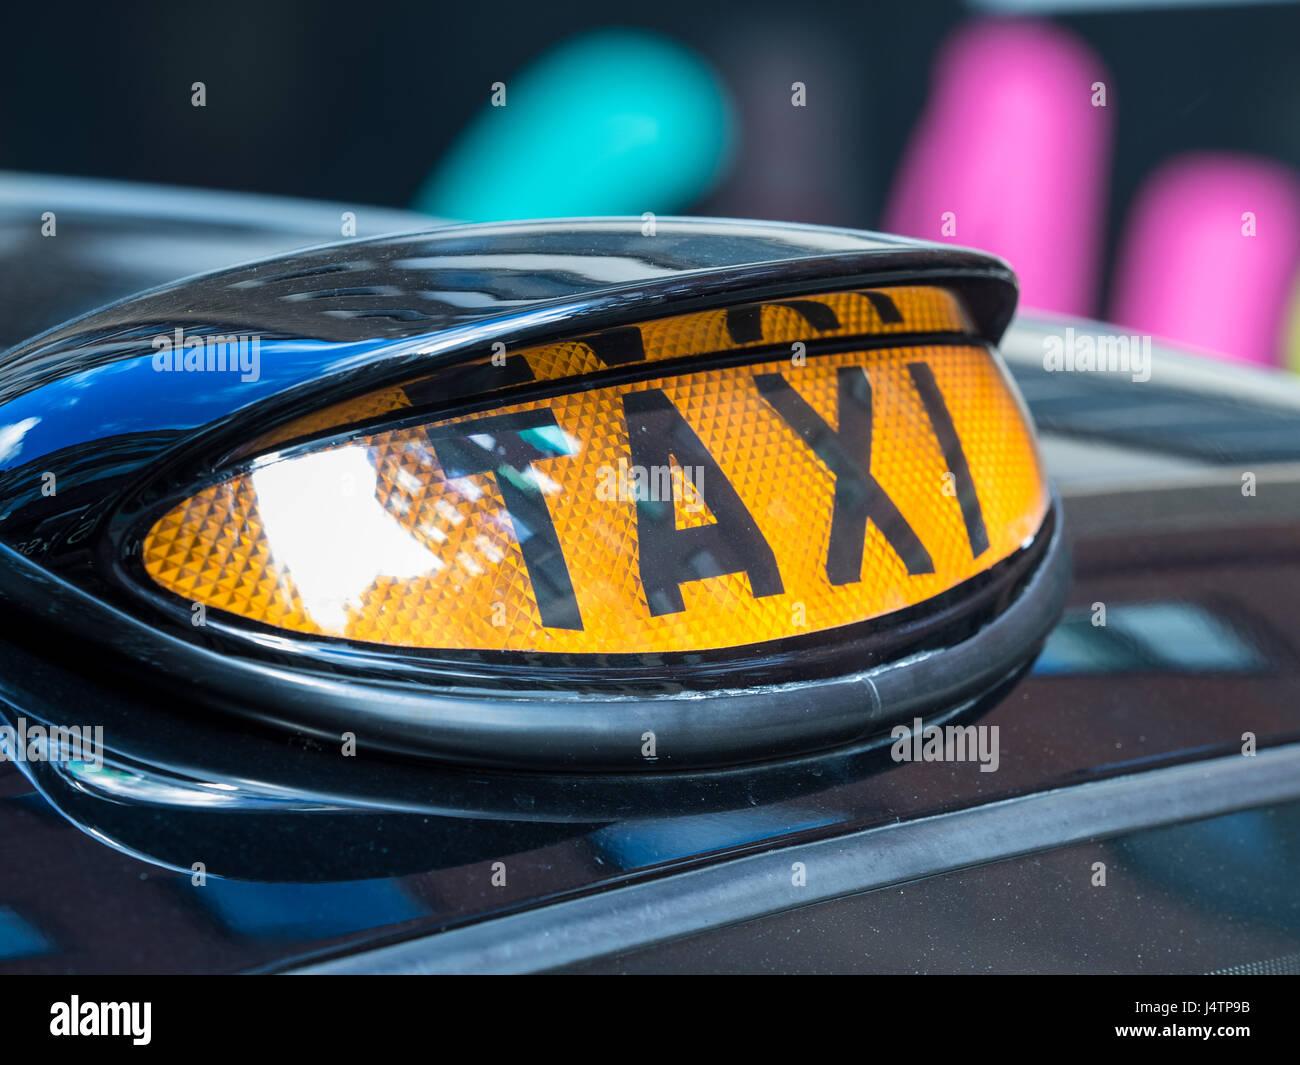 London Taxi Black Cab - Illuminated signs on the roof of London Taxis (Black Cabs) signal their availability for Stock Photo